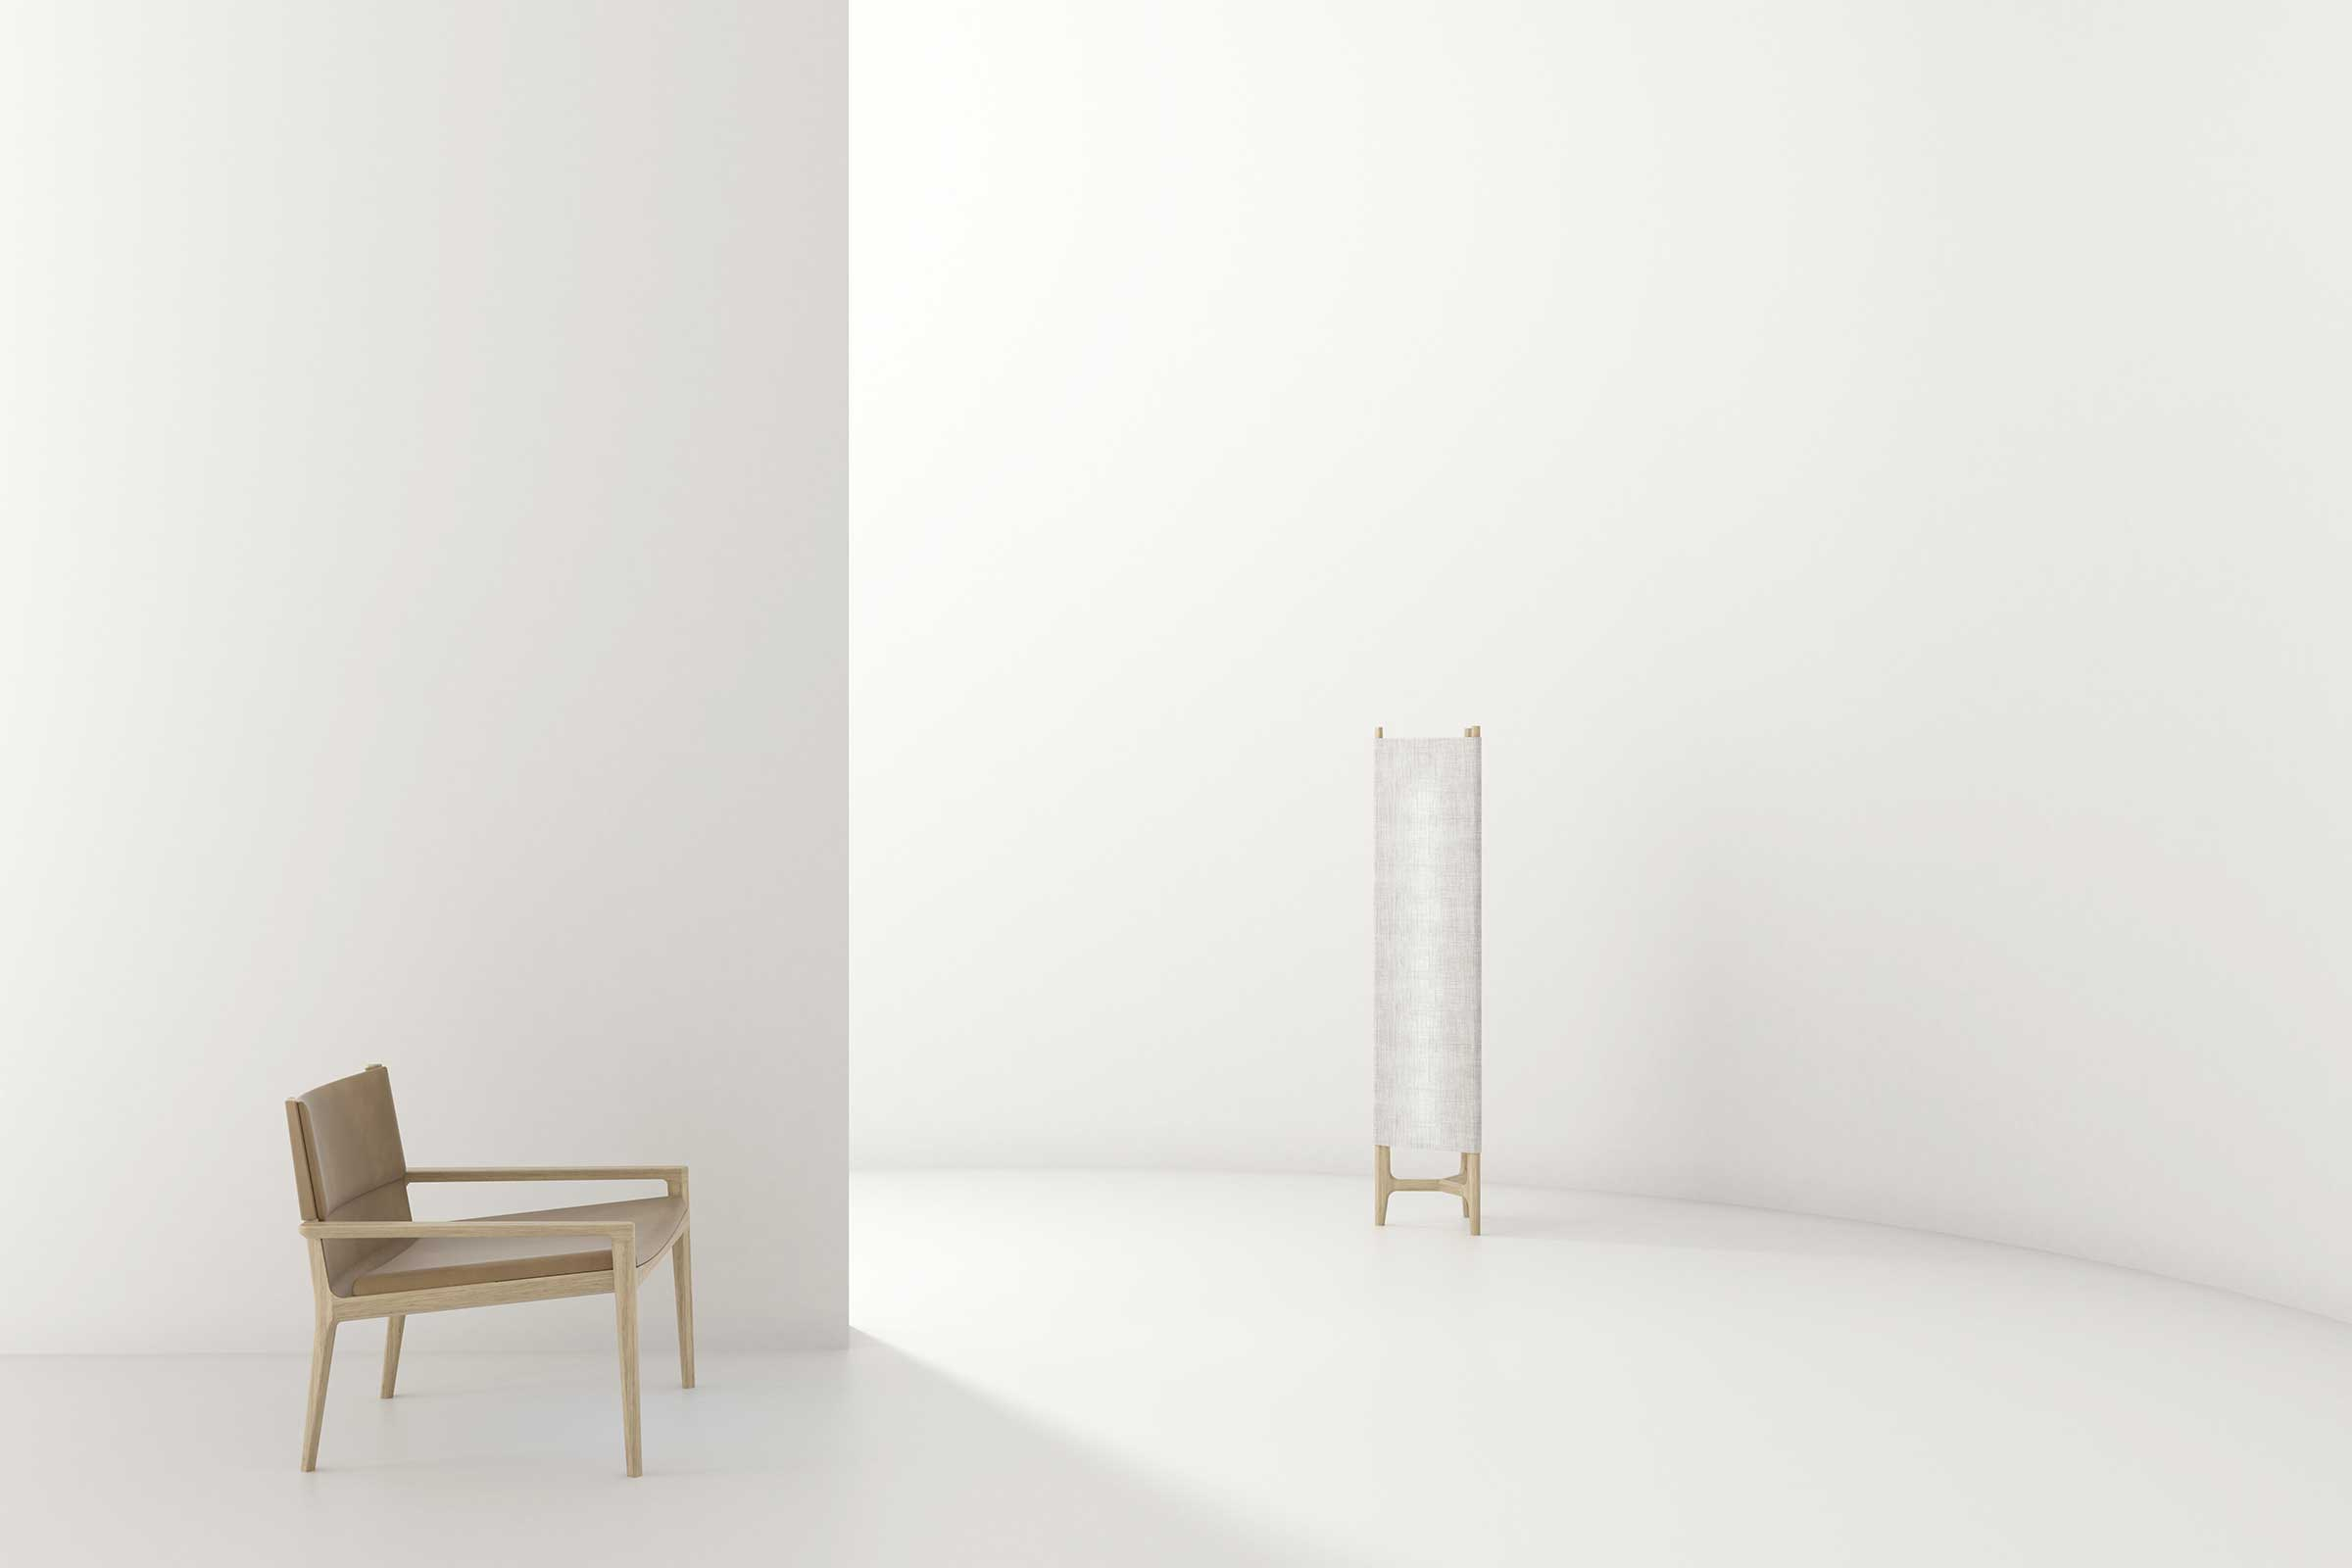 The Taylor lounge chair and floor lamp for Stellar Works